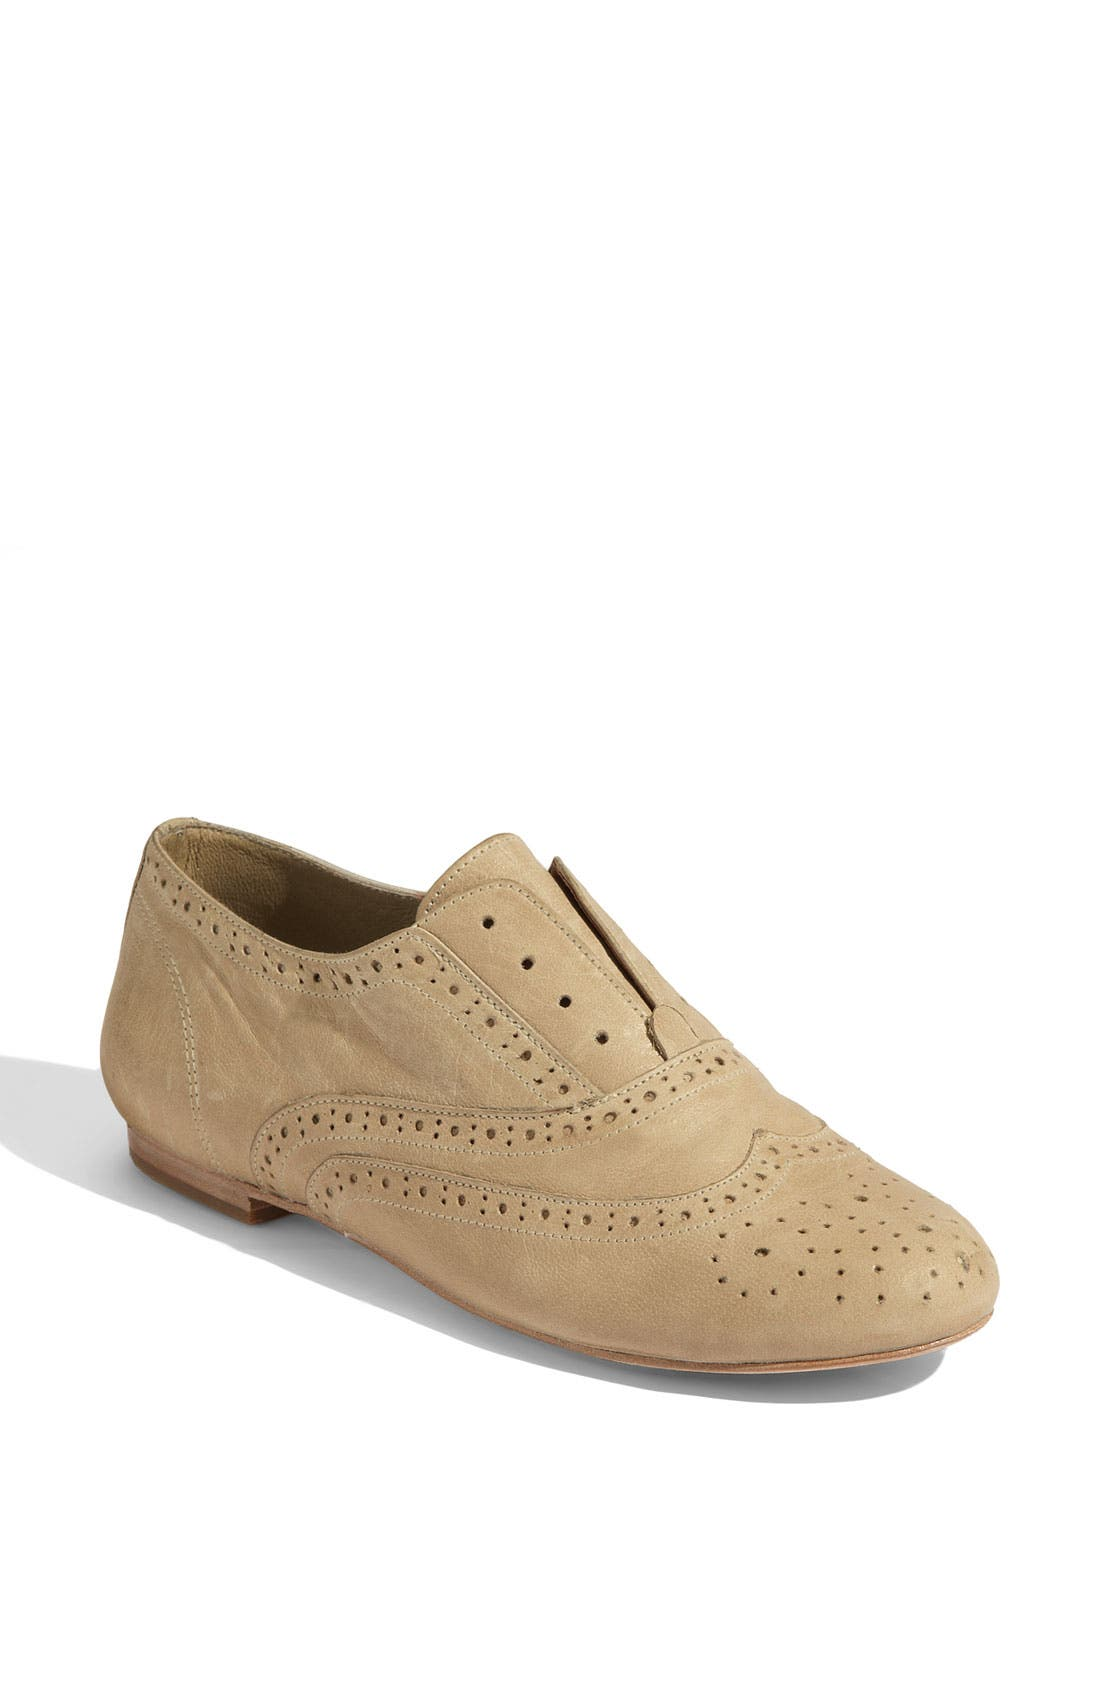 Main Image - Steve Madden 'Trouser' Laceless Oxford